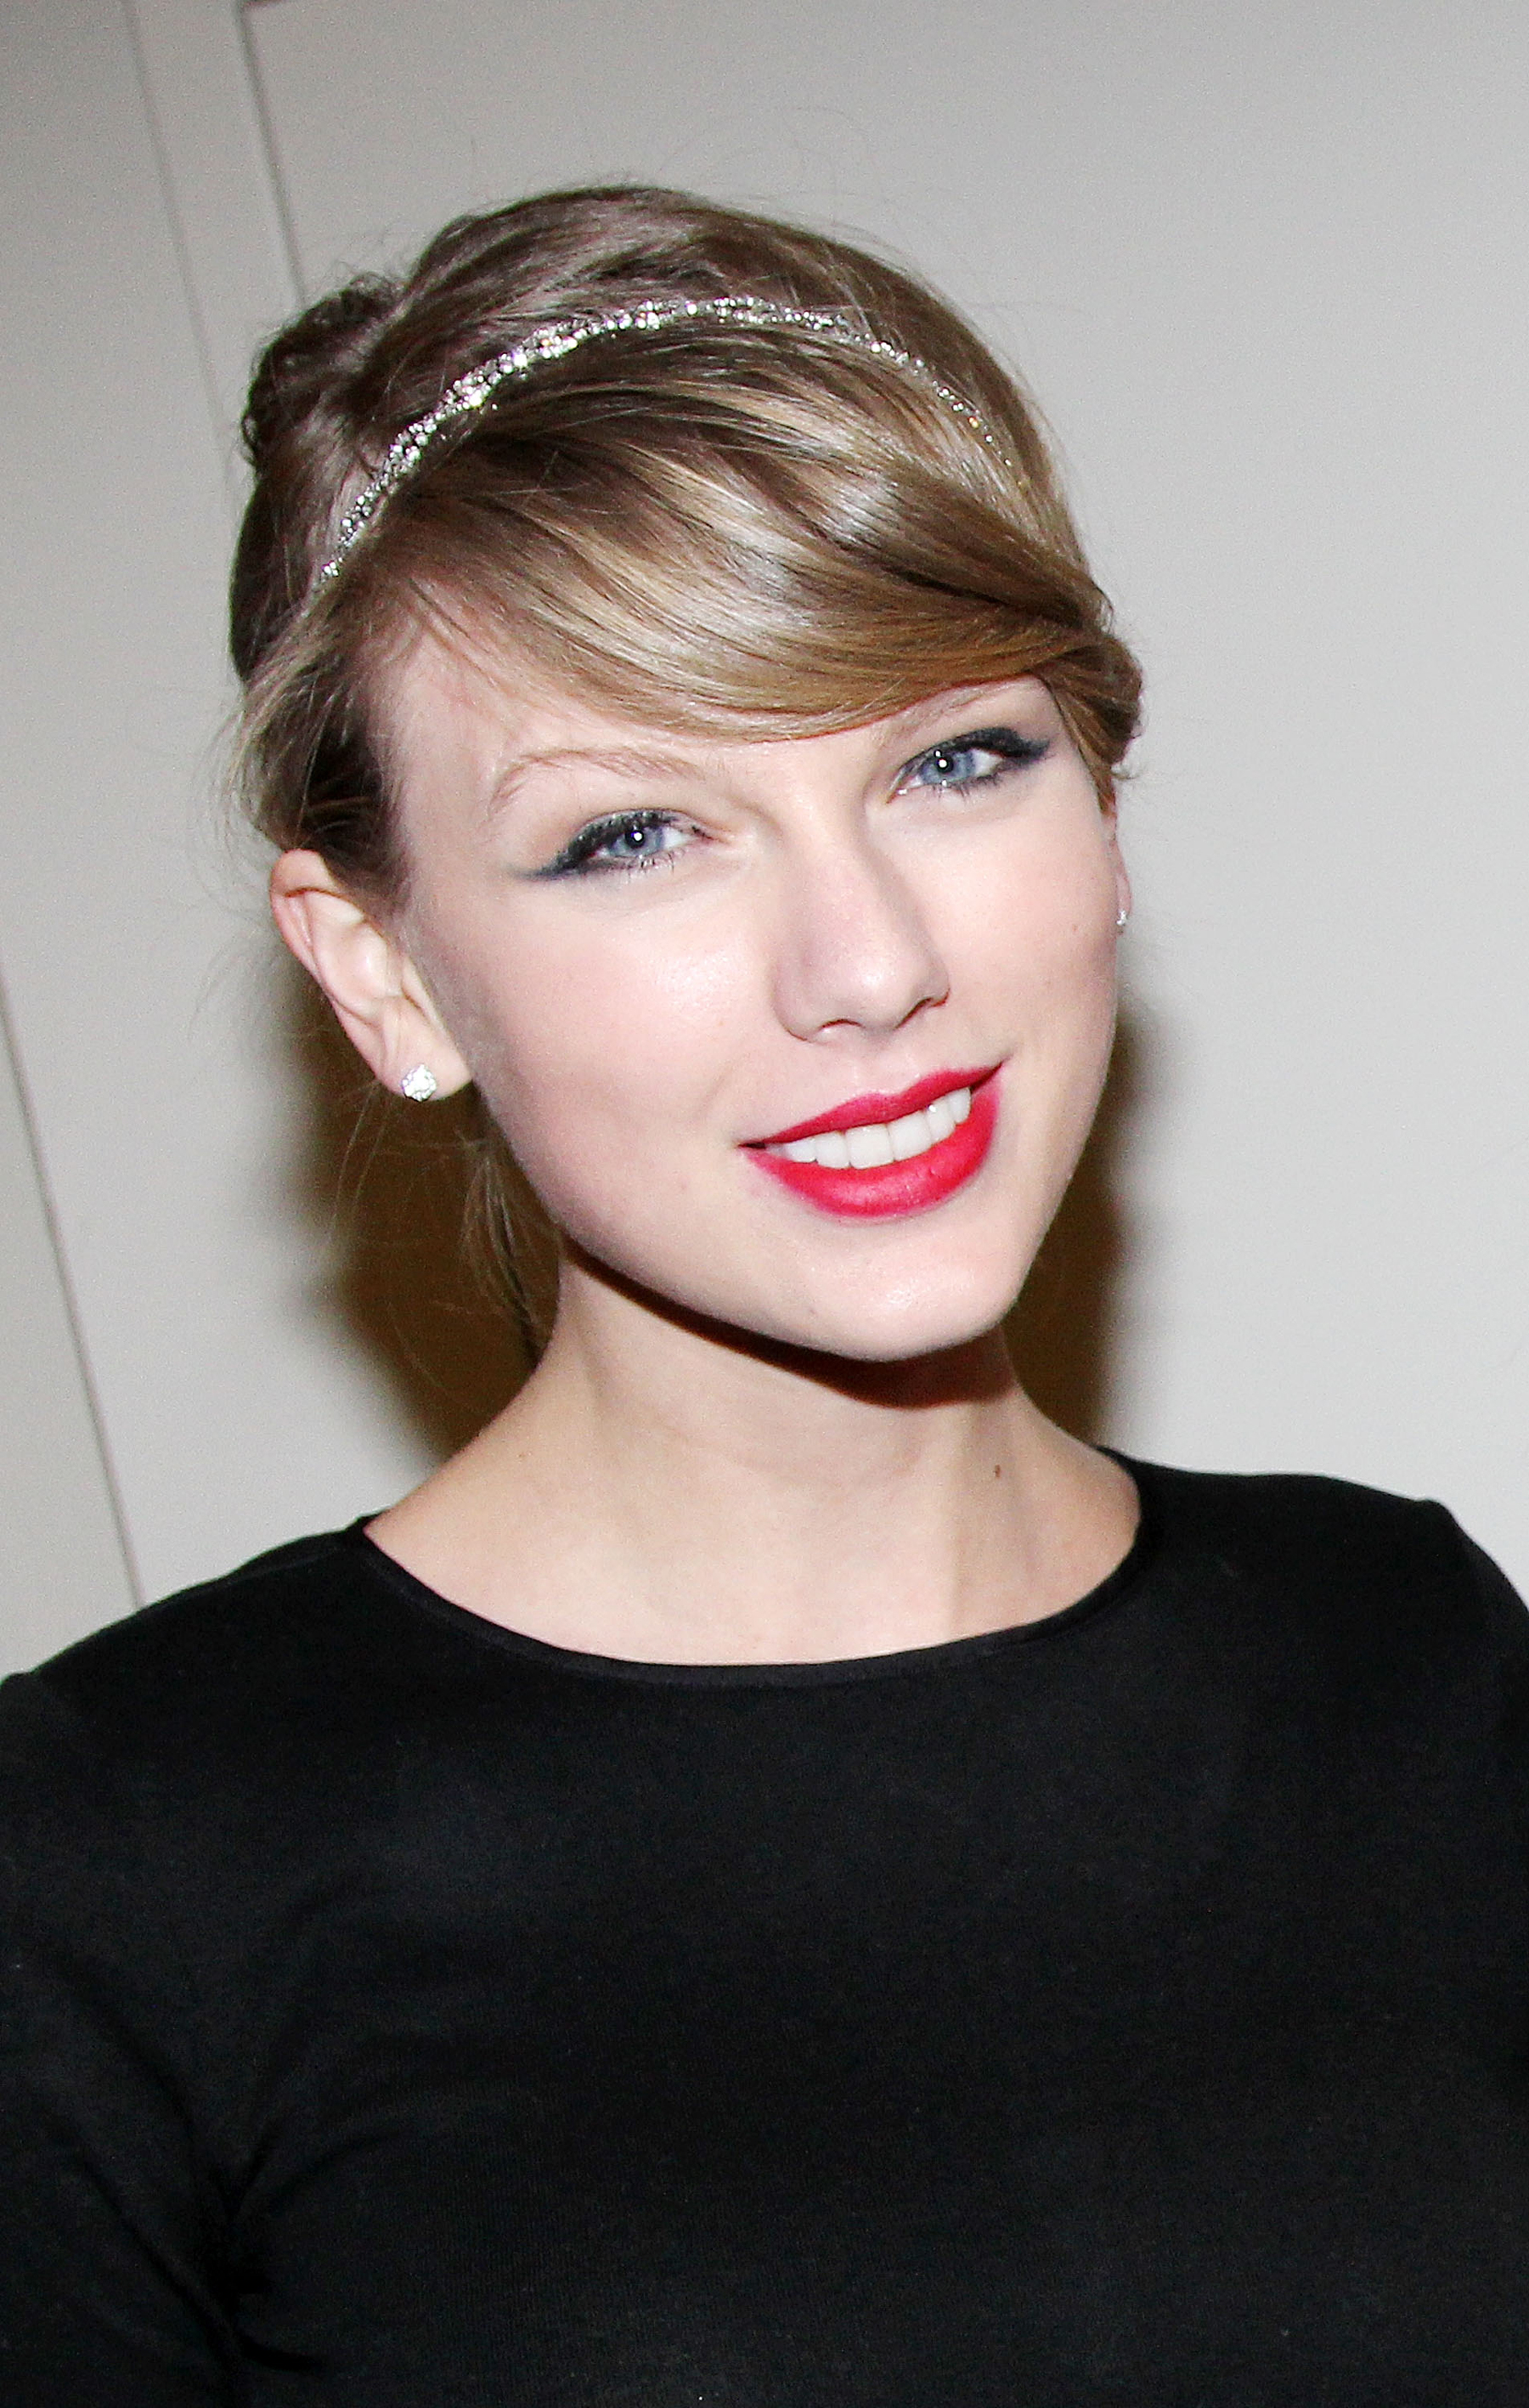 Taylor Swift Cancels Thailand Concert Due to Political Turbulence